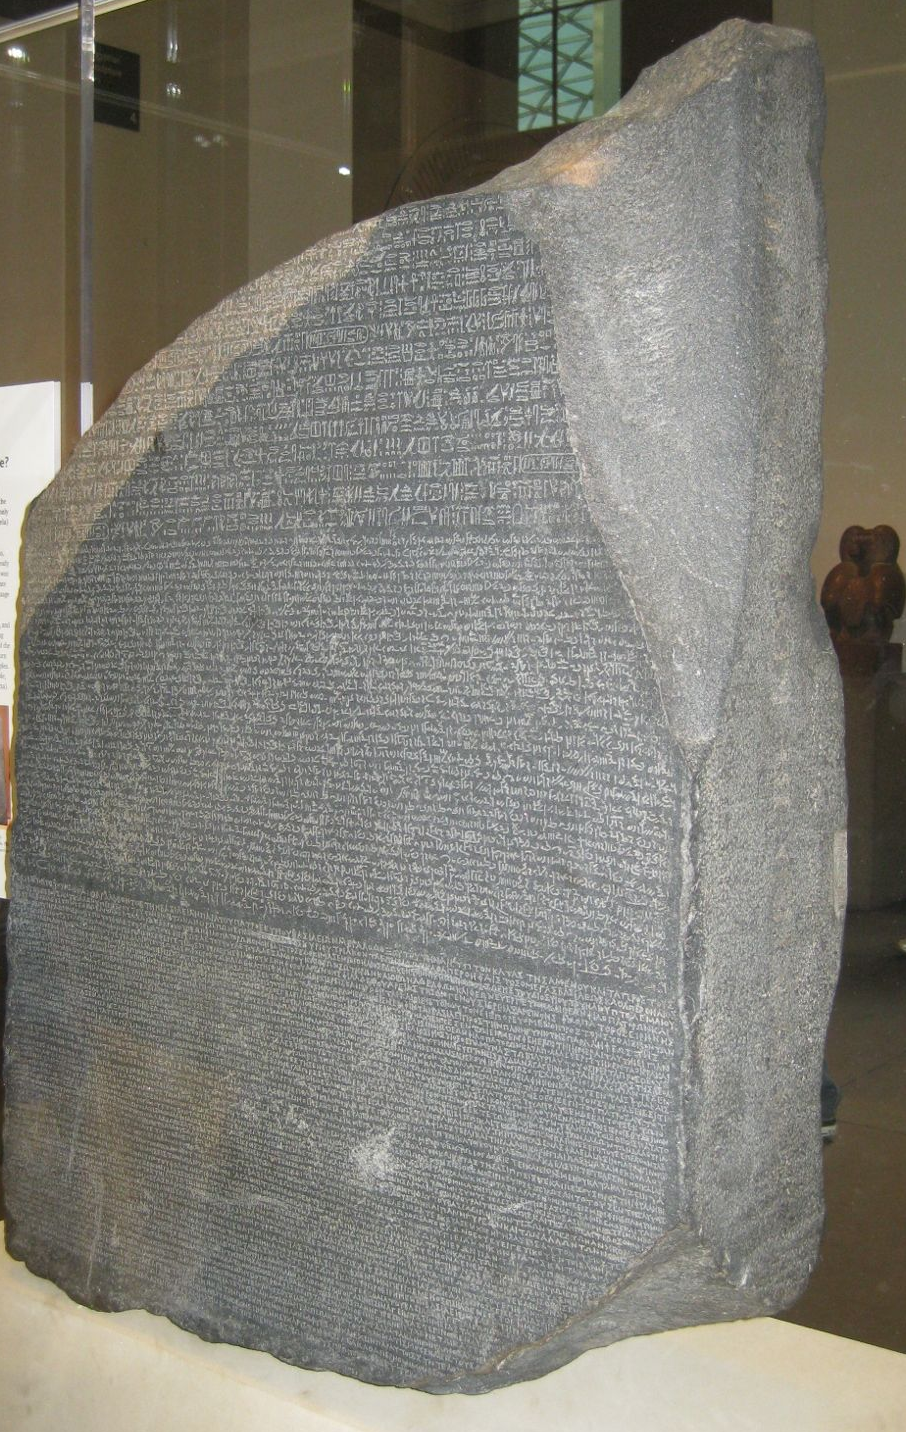 IGA - The Rosetta Stone of Identity Management and Governance